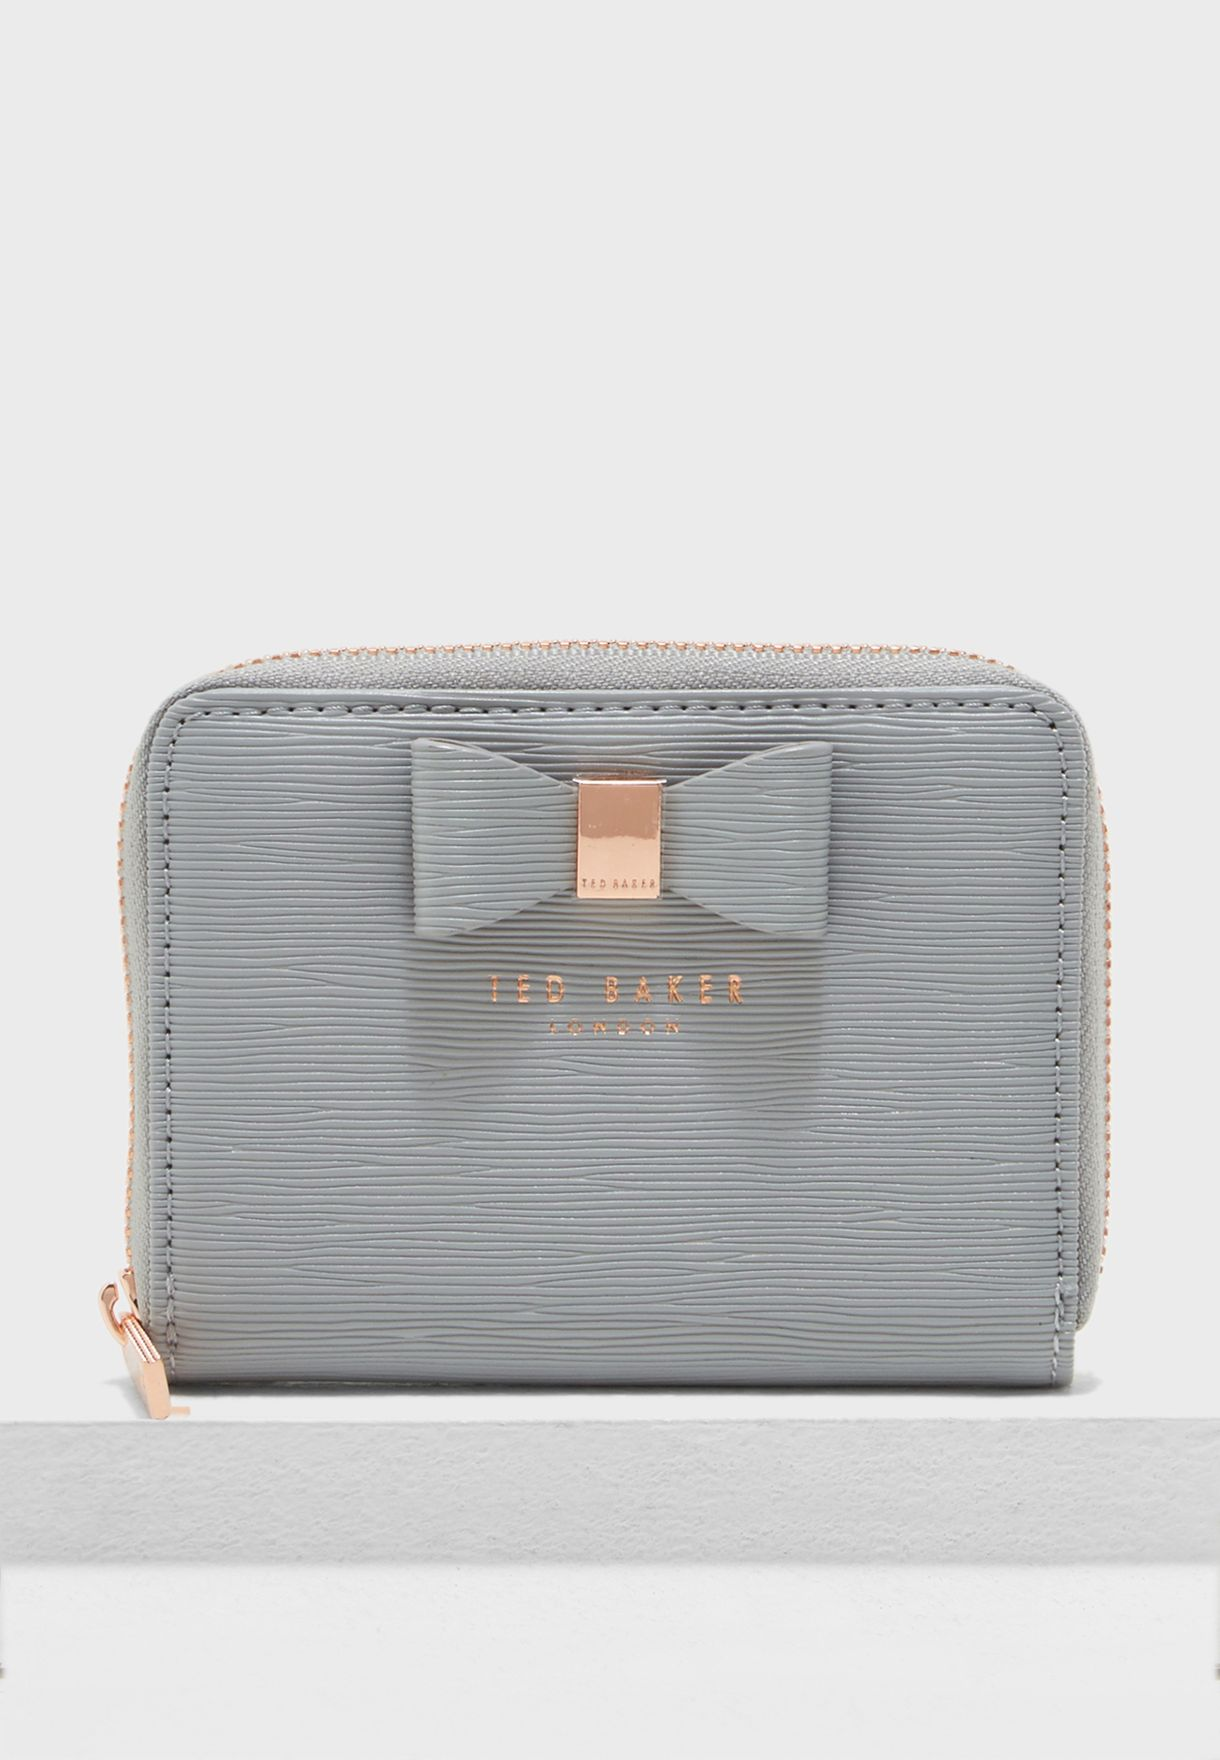 b42af4fa9 Shop Ted baker grey Aureole Textured Small Zip Purse 147399 for ...